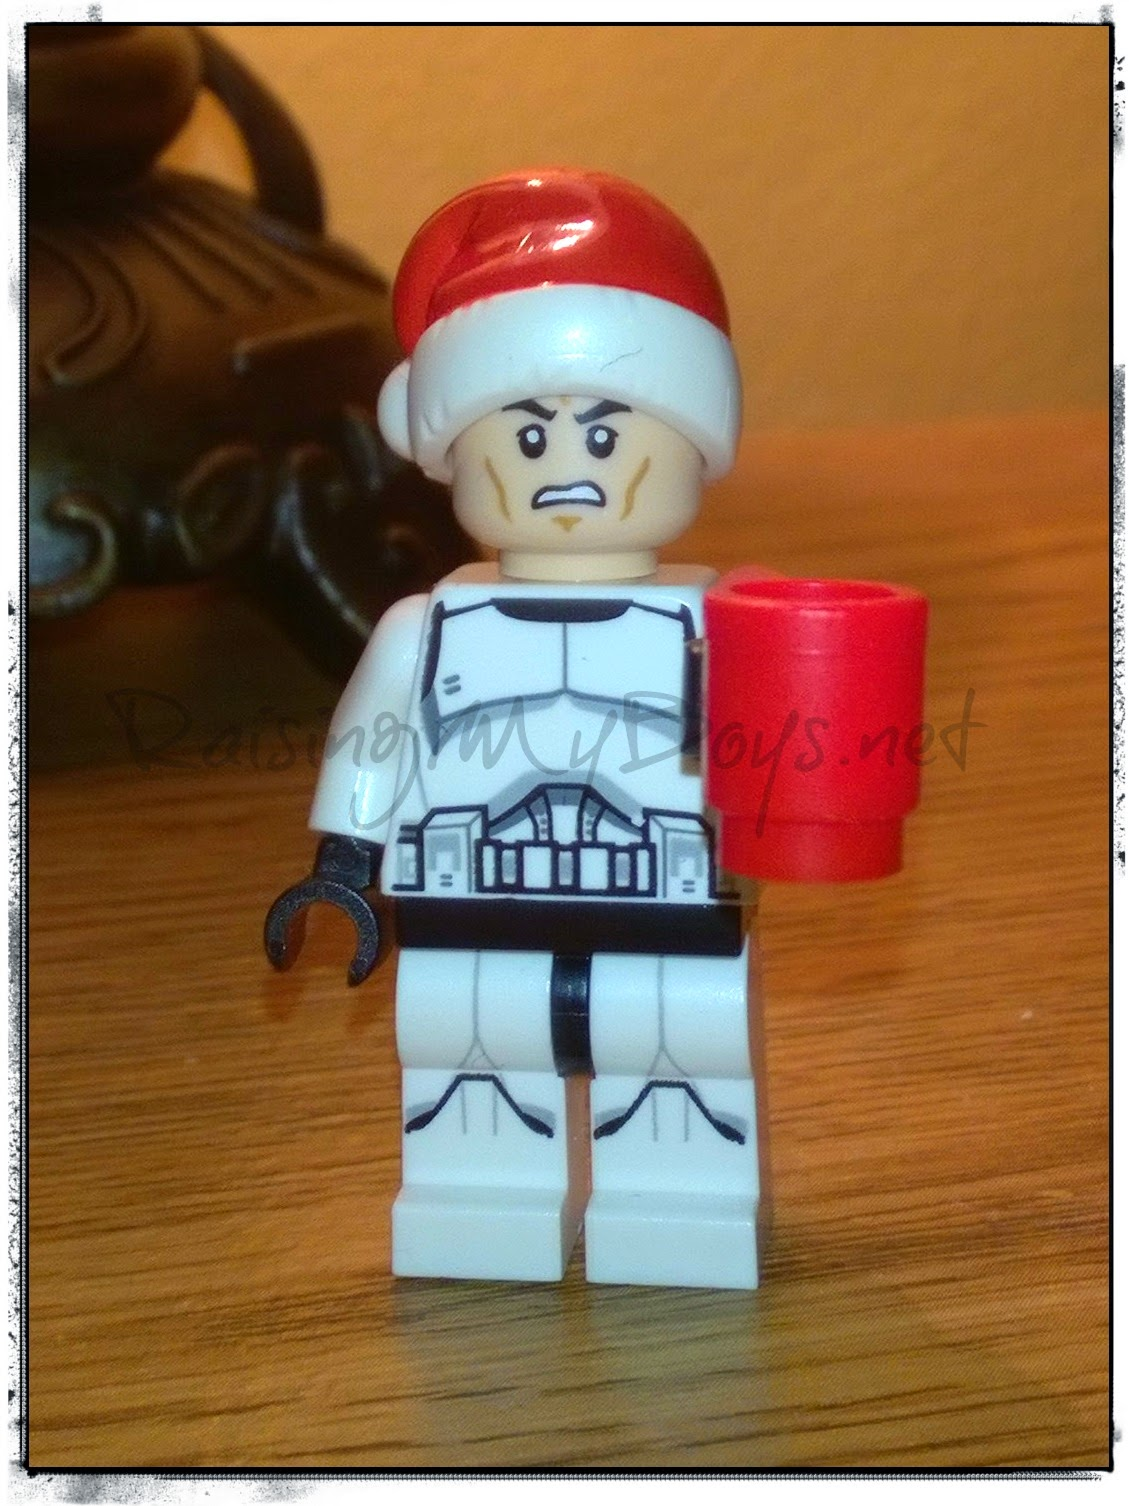 cranky Lego figure with mug